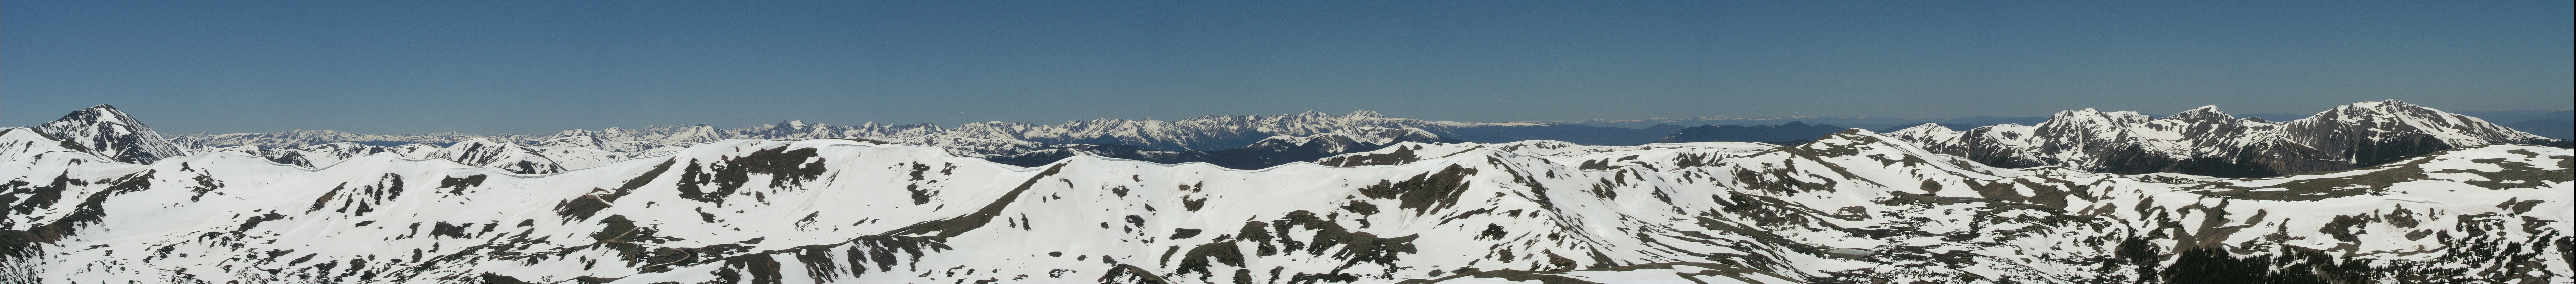 Lonny's Snowy Peak Panorama(Williams Fork Mtns in the distance)